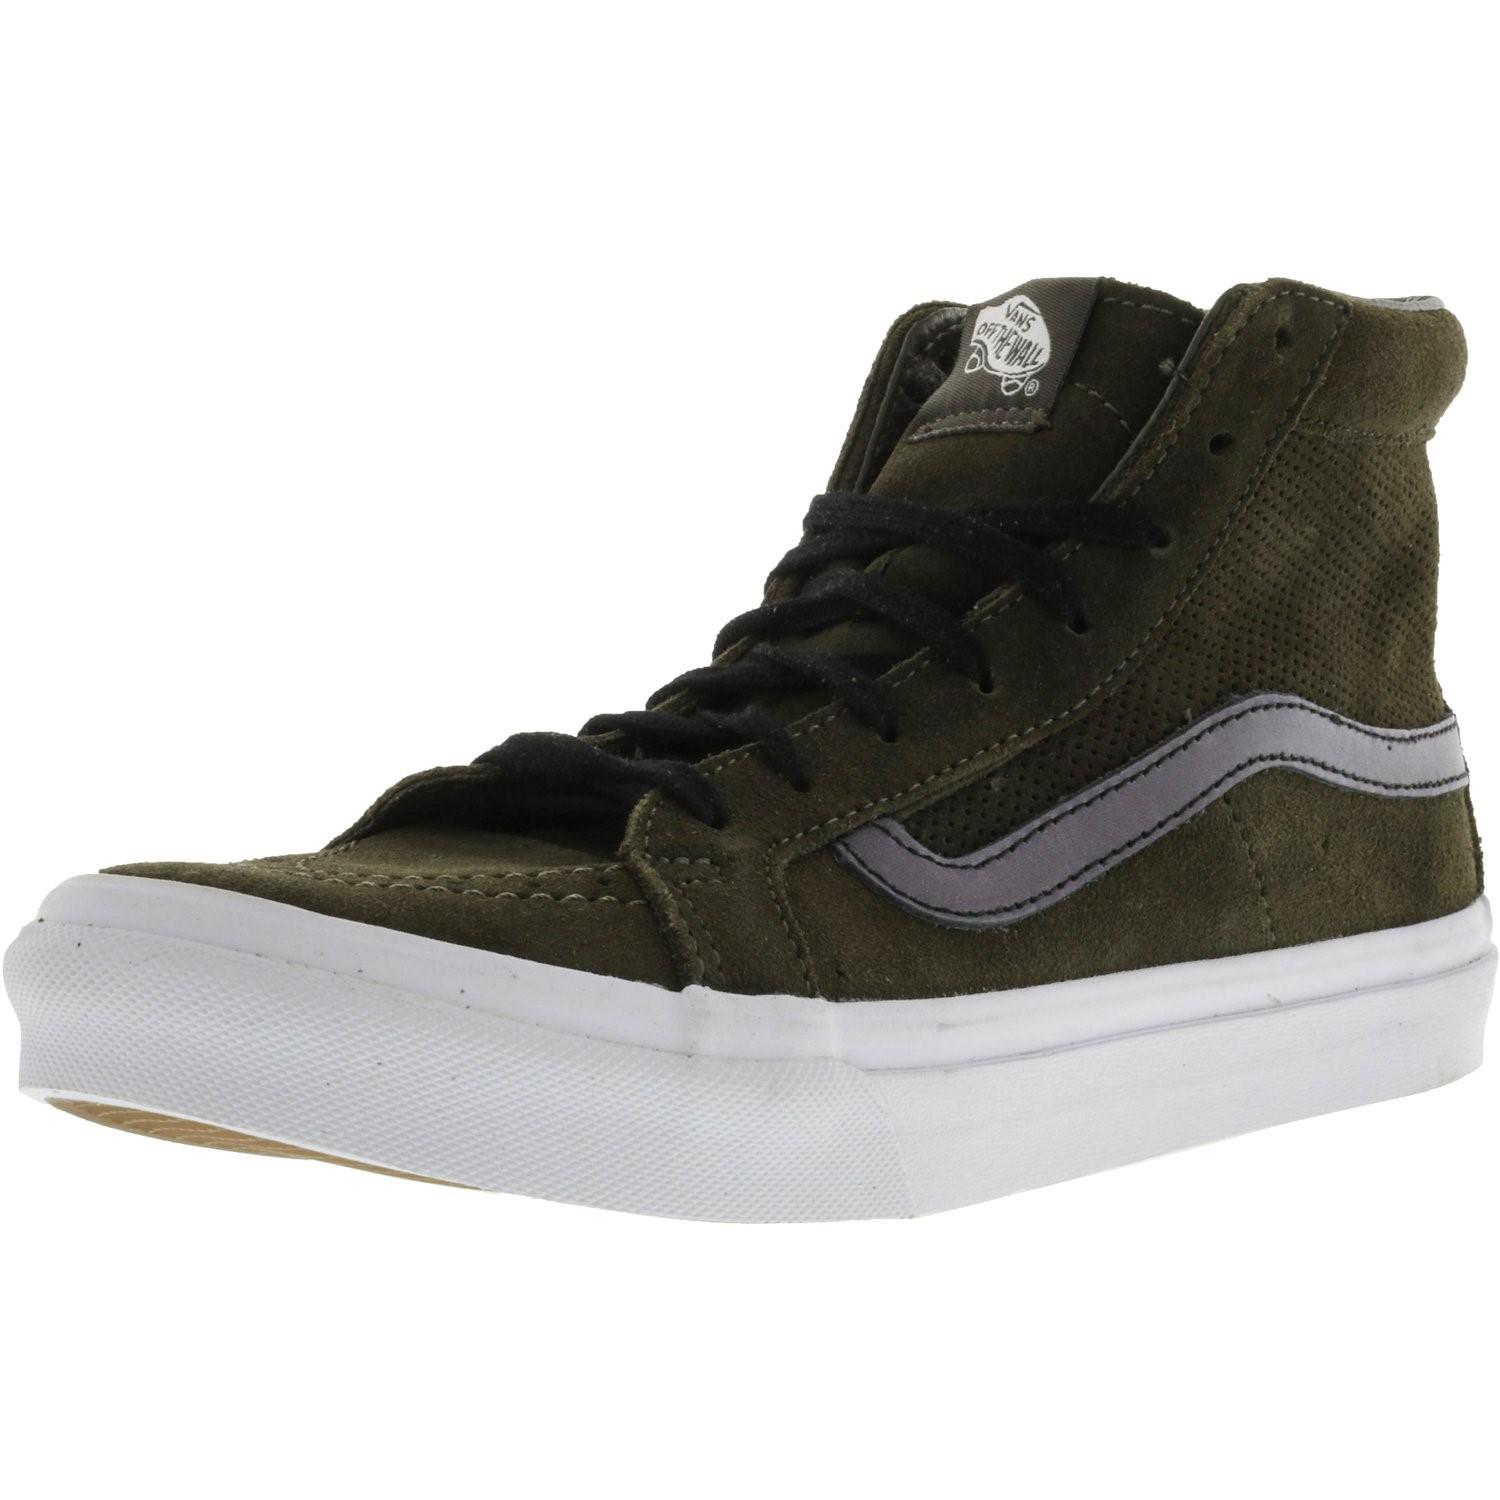 75124f1105723e Lyst - Vans Sk8-hi Slim Cutout Perforated Suede High-top ...